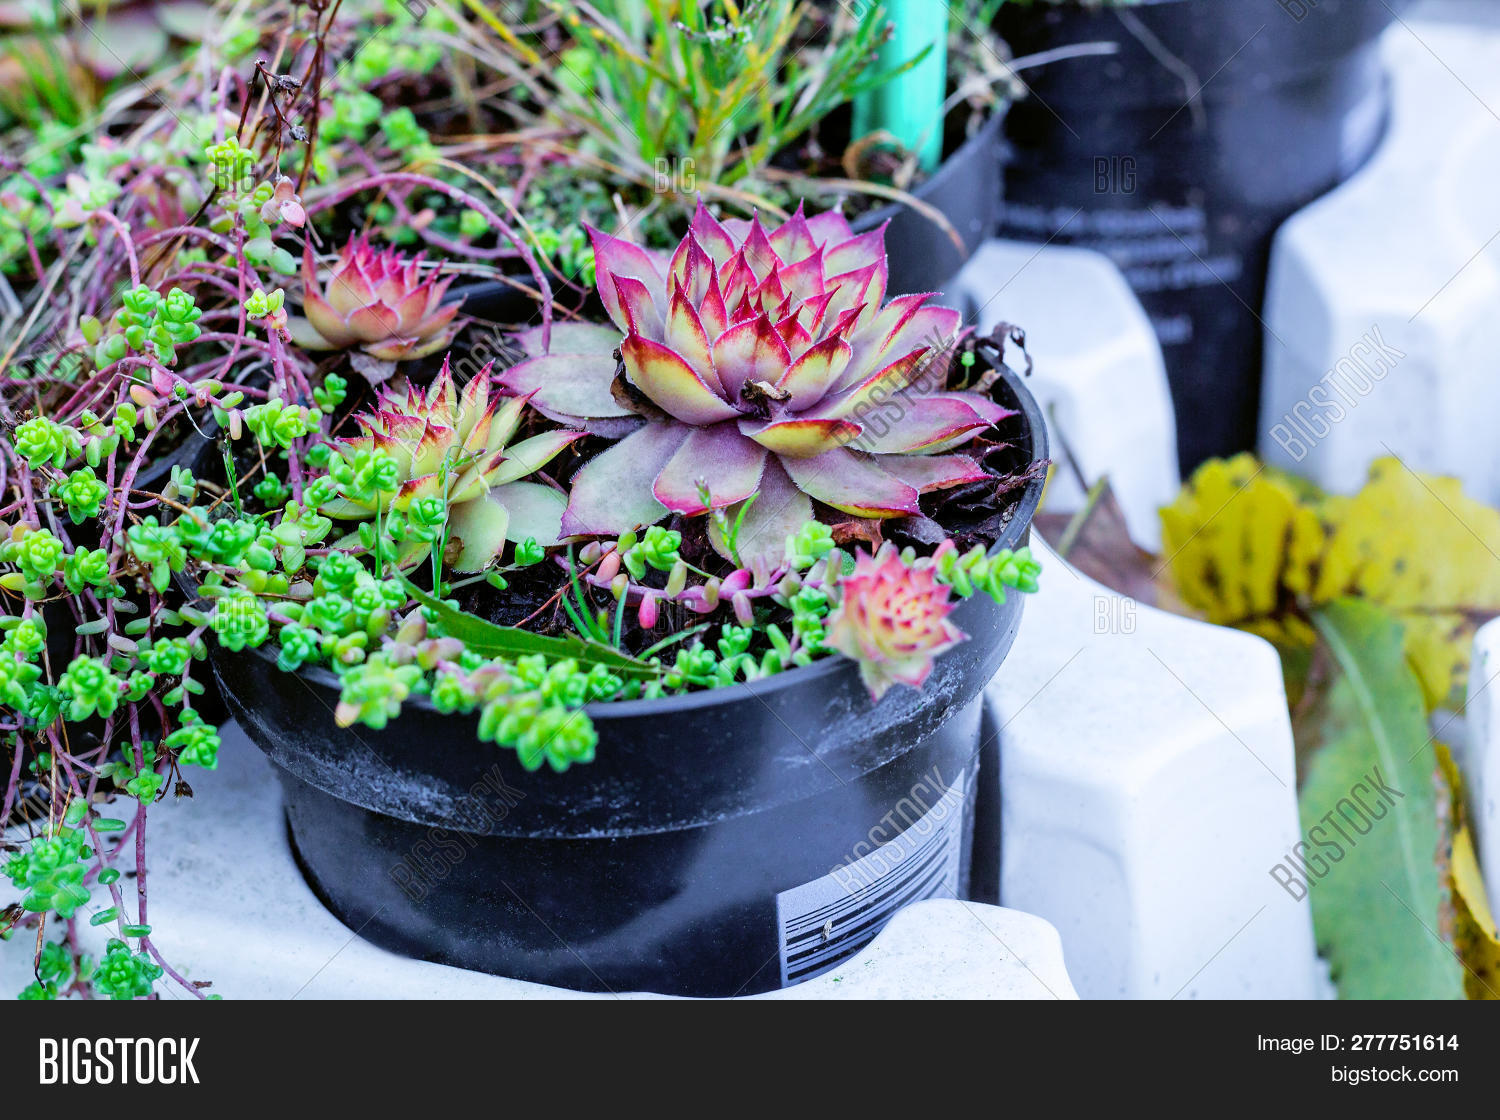 Sempervivum Green Plants In Flower Pots. Common Houseleeks Or Liveforever Flowers Growing In Flowerpots. Potted Succulents Selling In Garden Center & Common Potted Flowers \u0026 9. Impatiens